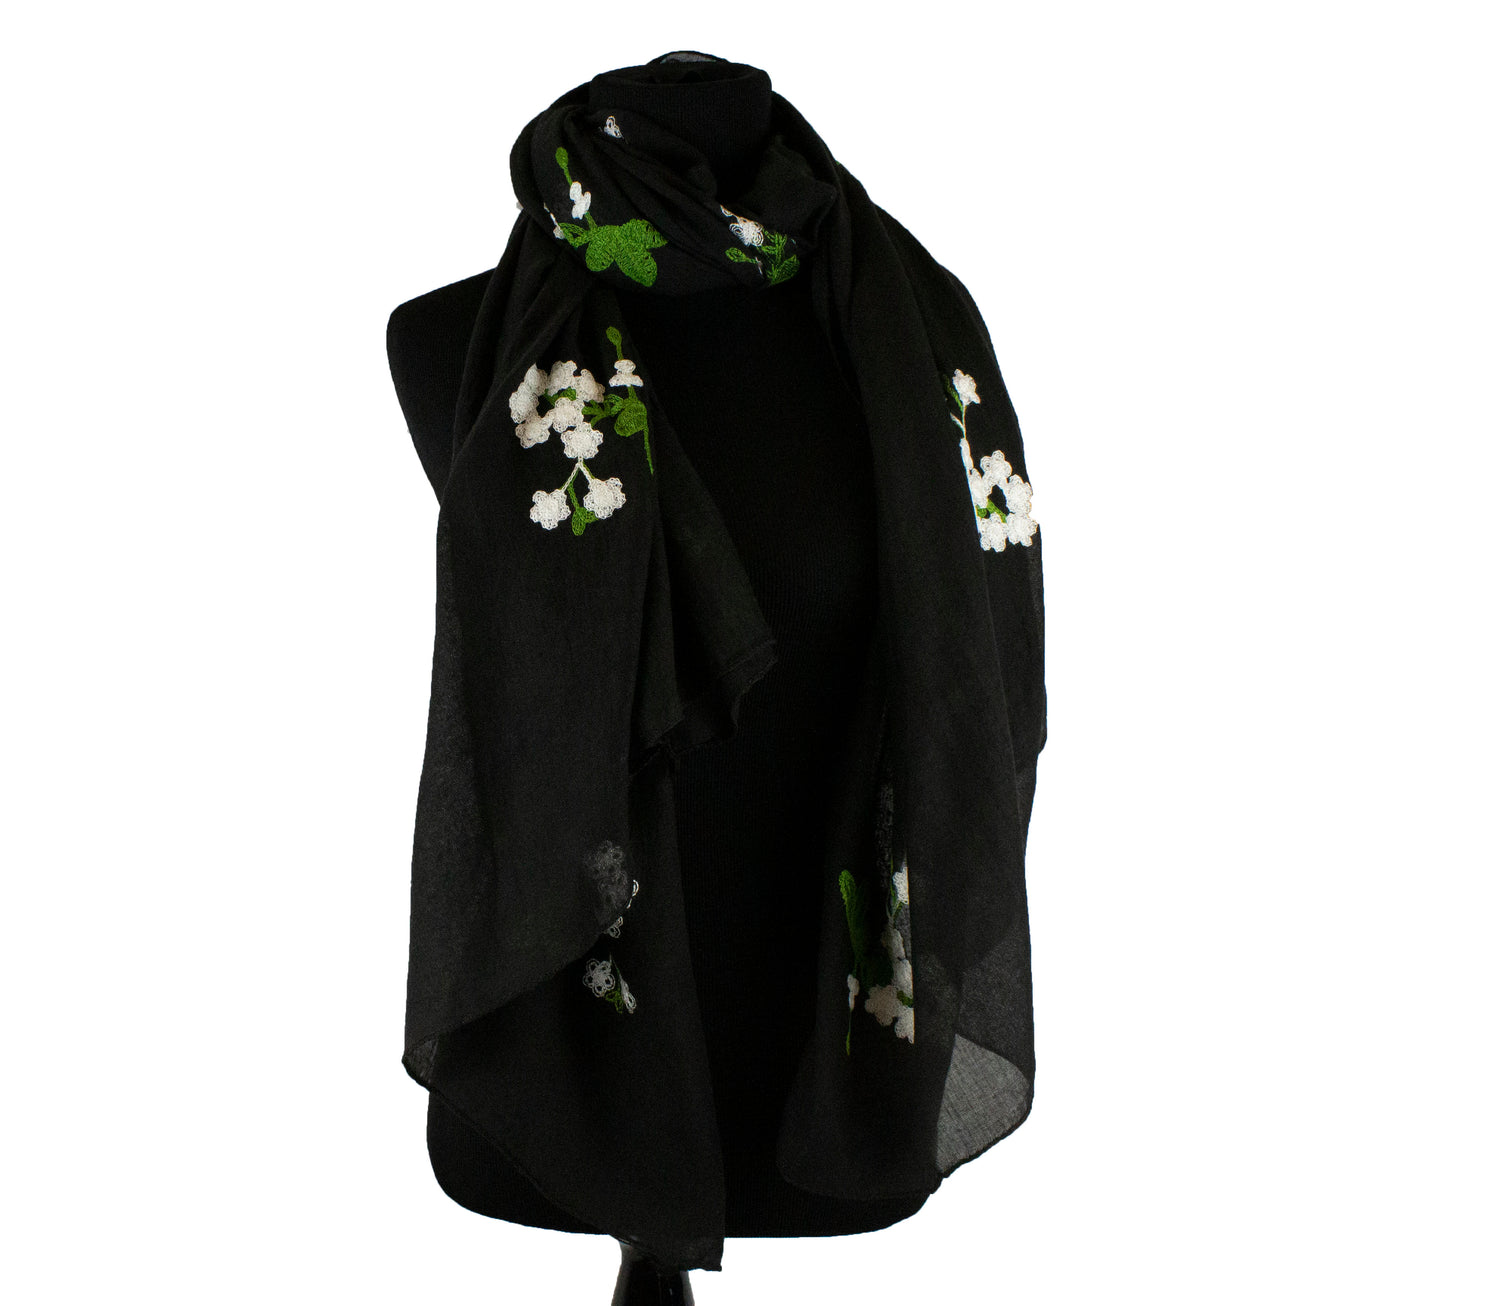 black hijab with white embroidered flowers and green details